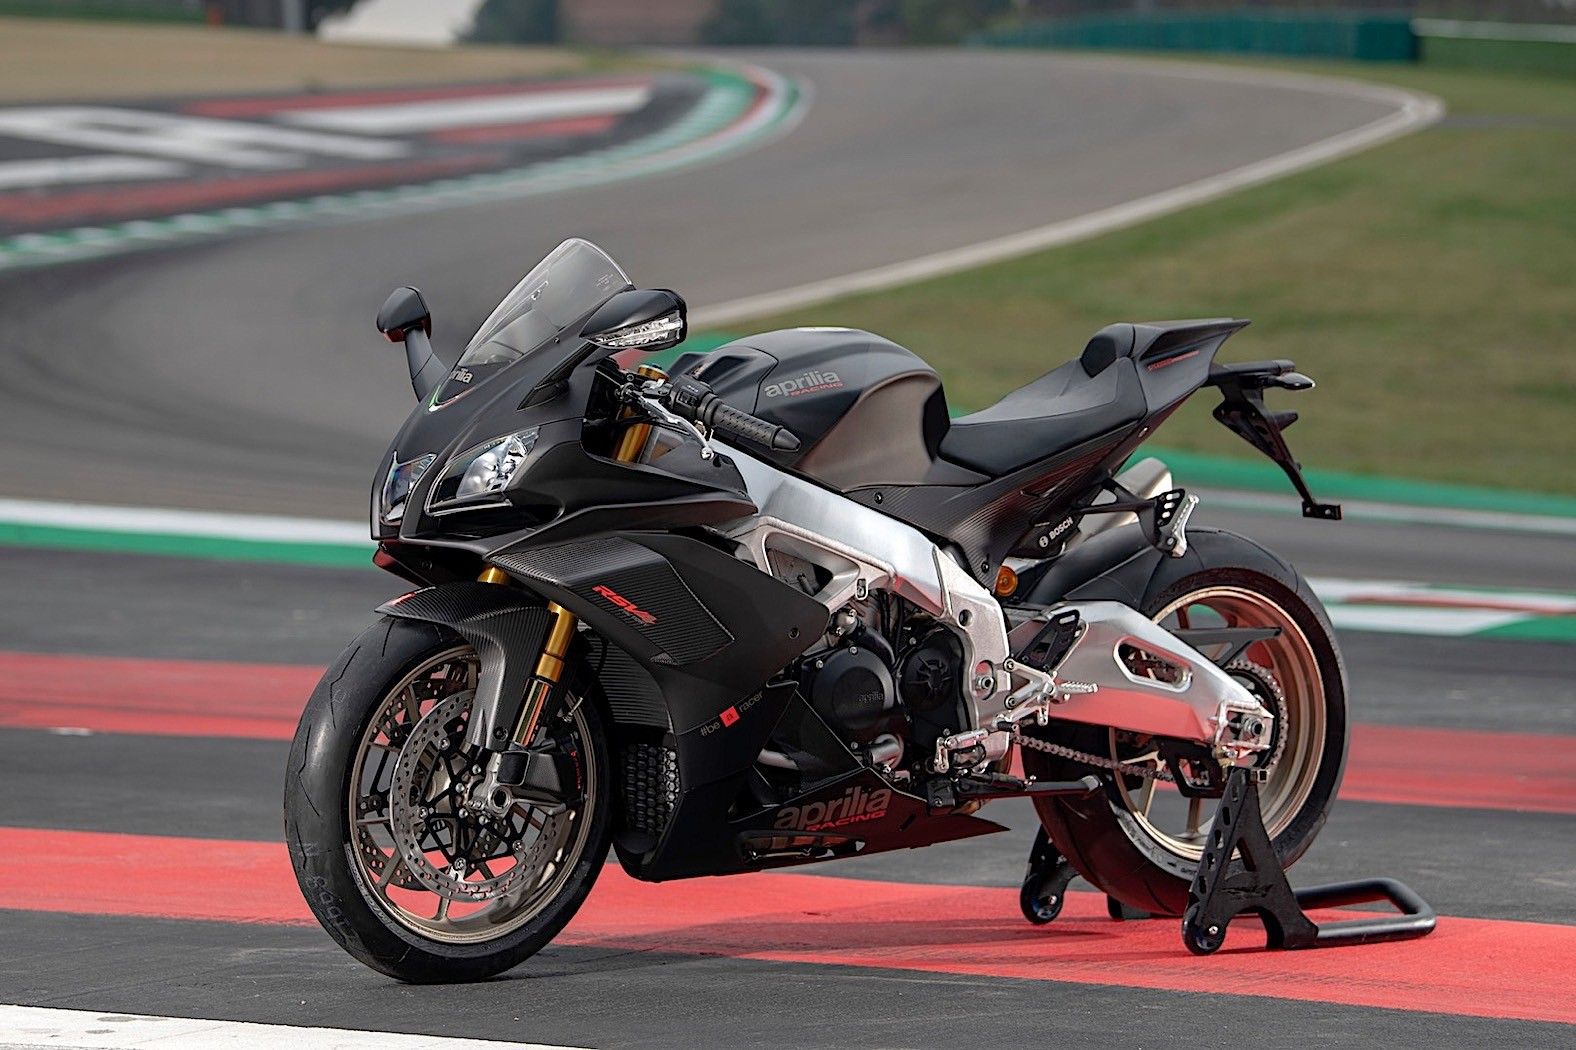 2019 Aprilia RSV4 1100 Factory Is the Most Powerful RSV4 Ever - autoevolution